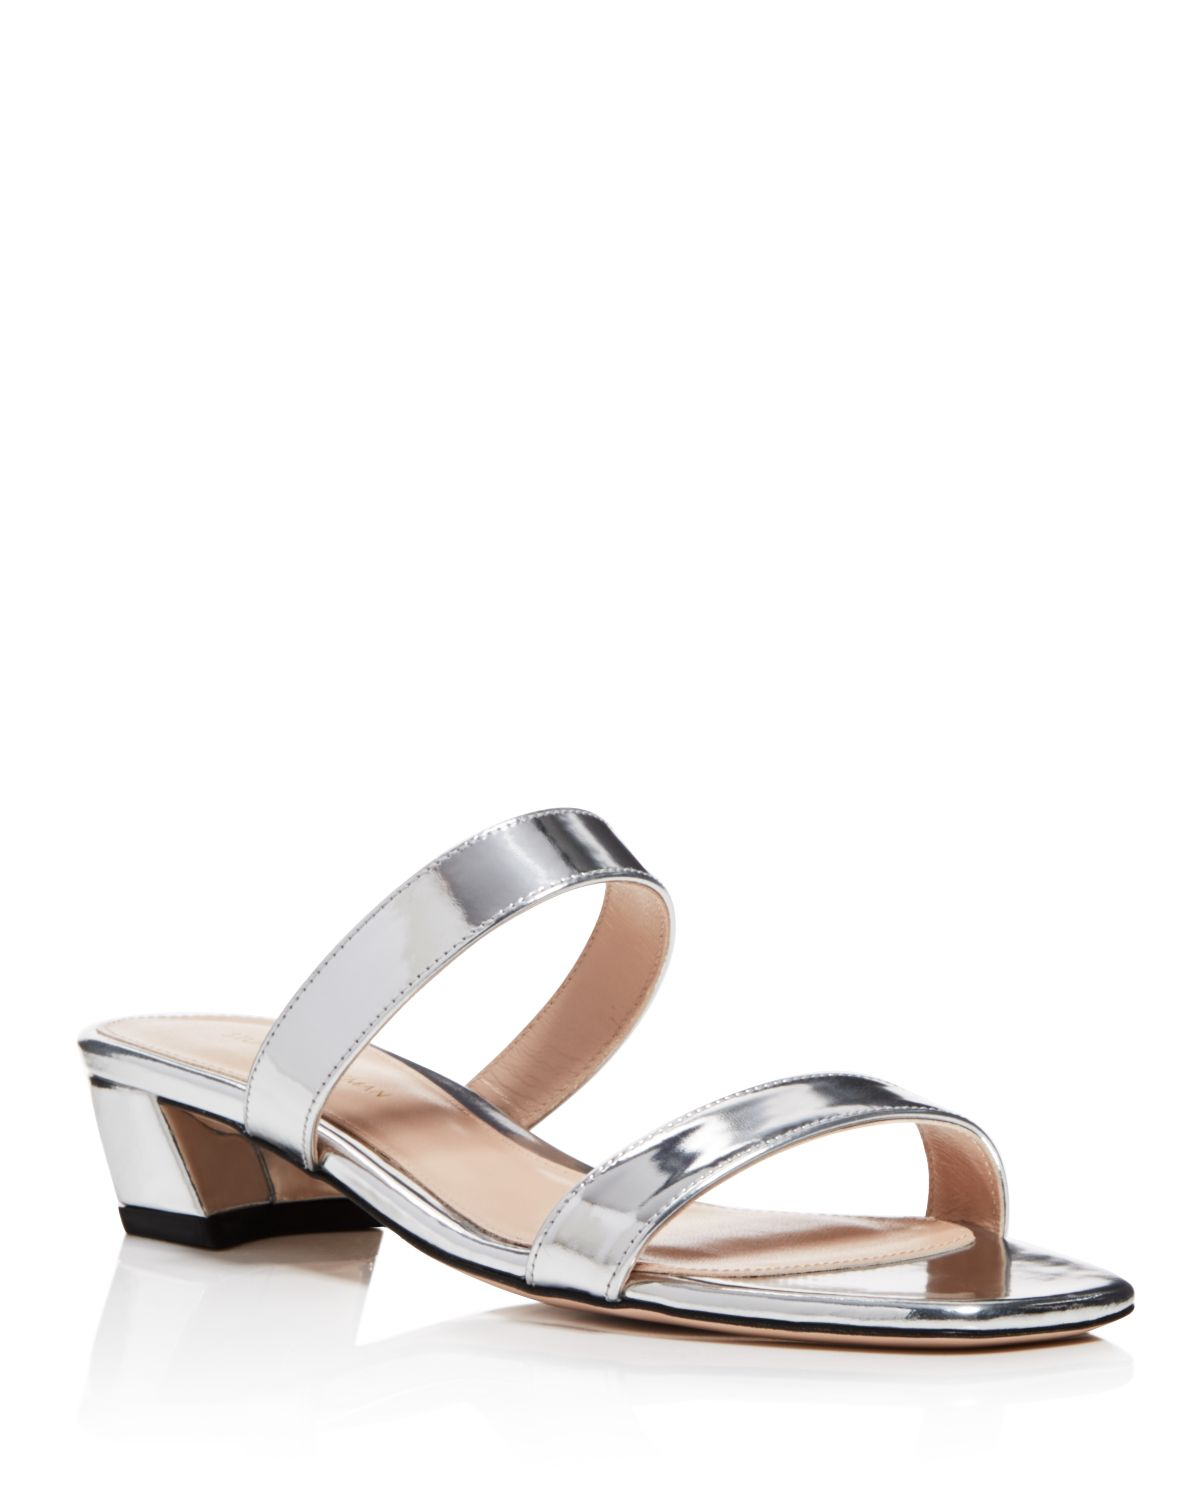 Stuart Weitzman Women's Ava Patent Leather Slide Sandals